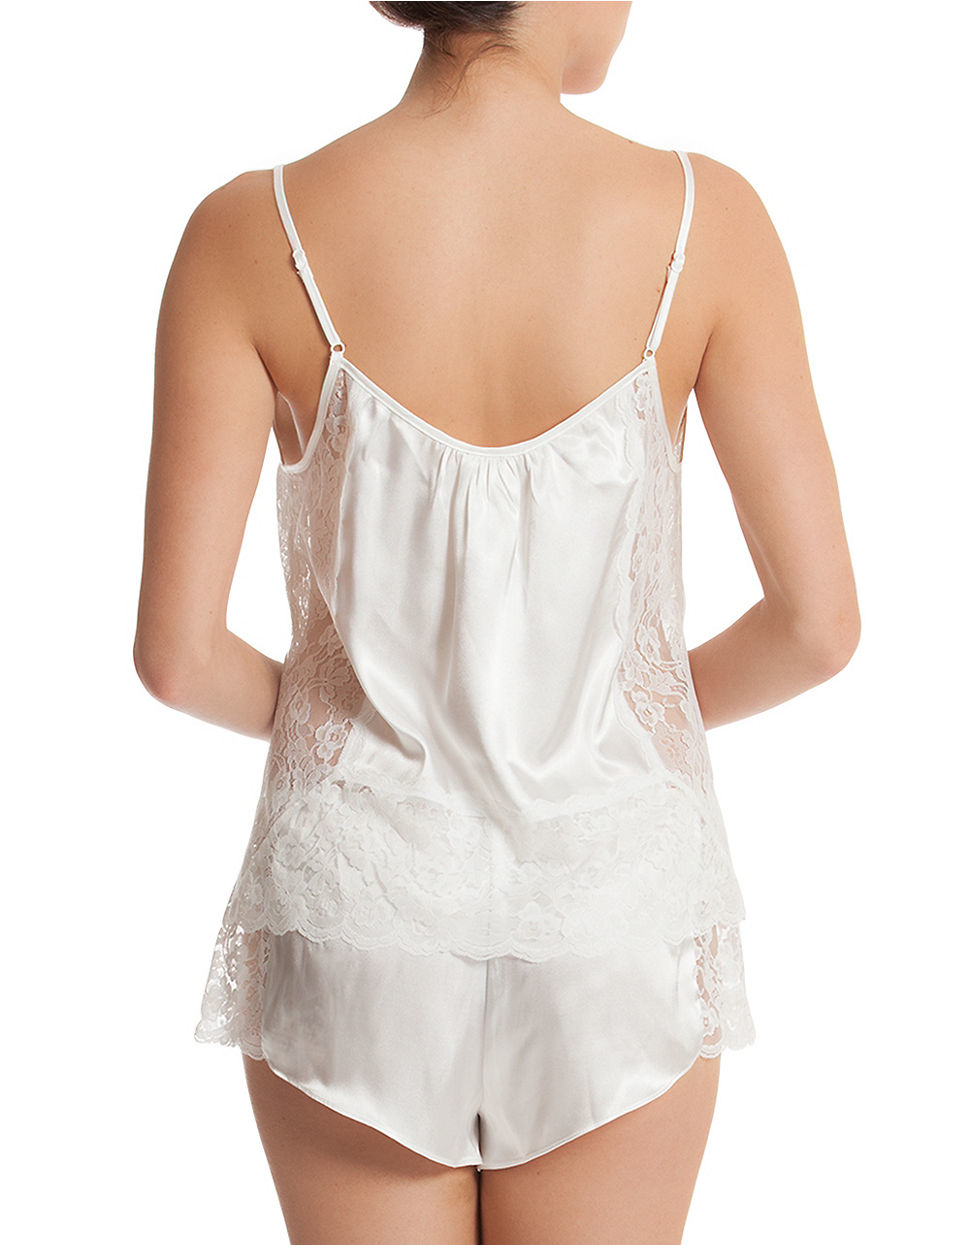 Silk Knit Corset-Style Cami-Boy Shorts Set (Medium-XL) $ $ Women's sexy silk knit camisole top and boy shorts set. Camisole top has a corset-styled front with ruffle trim accenting the cups and front and has adjustable straps. Matching boy shorts have elastic waist with ruffle trim.